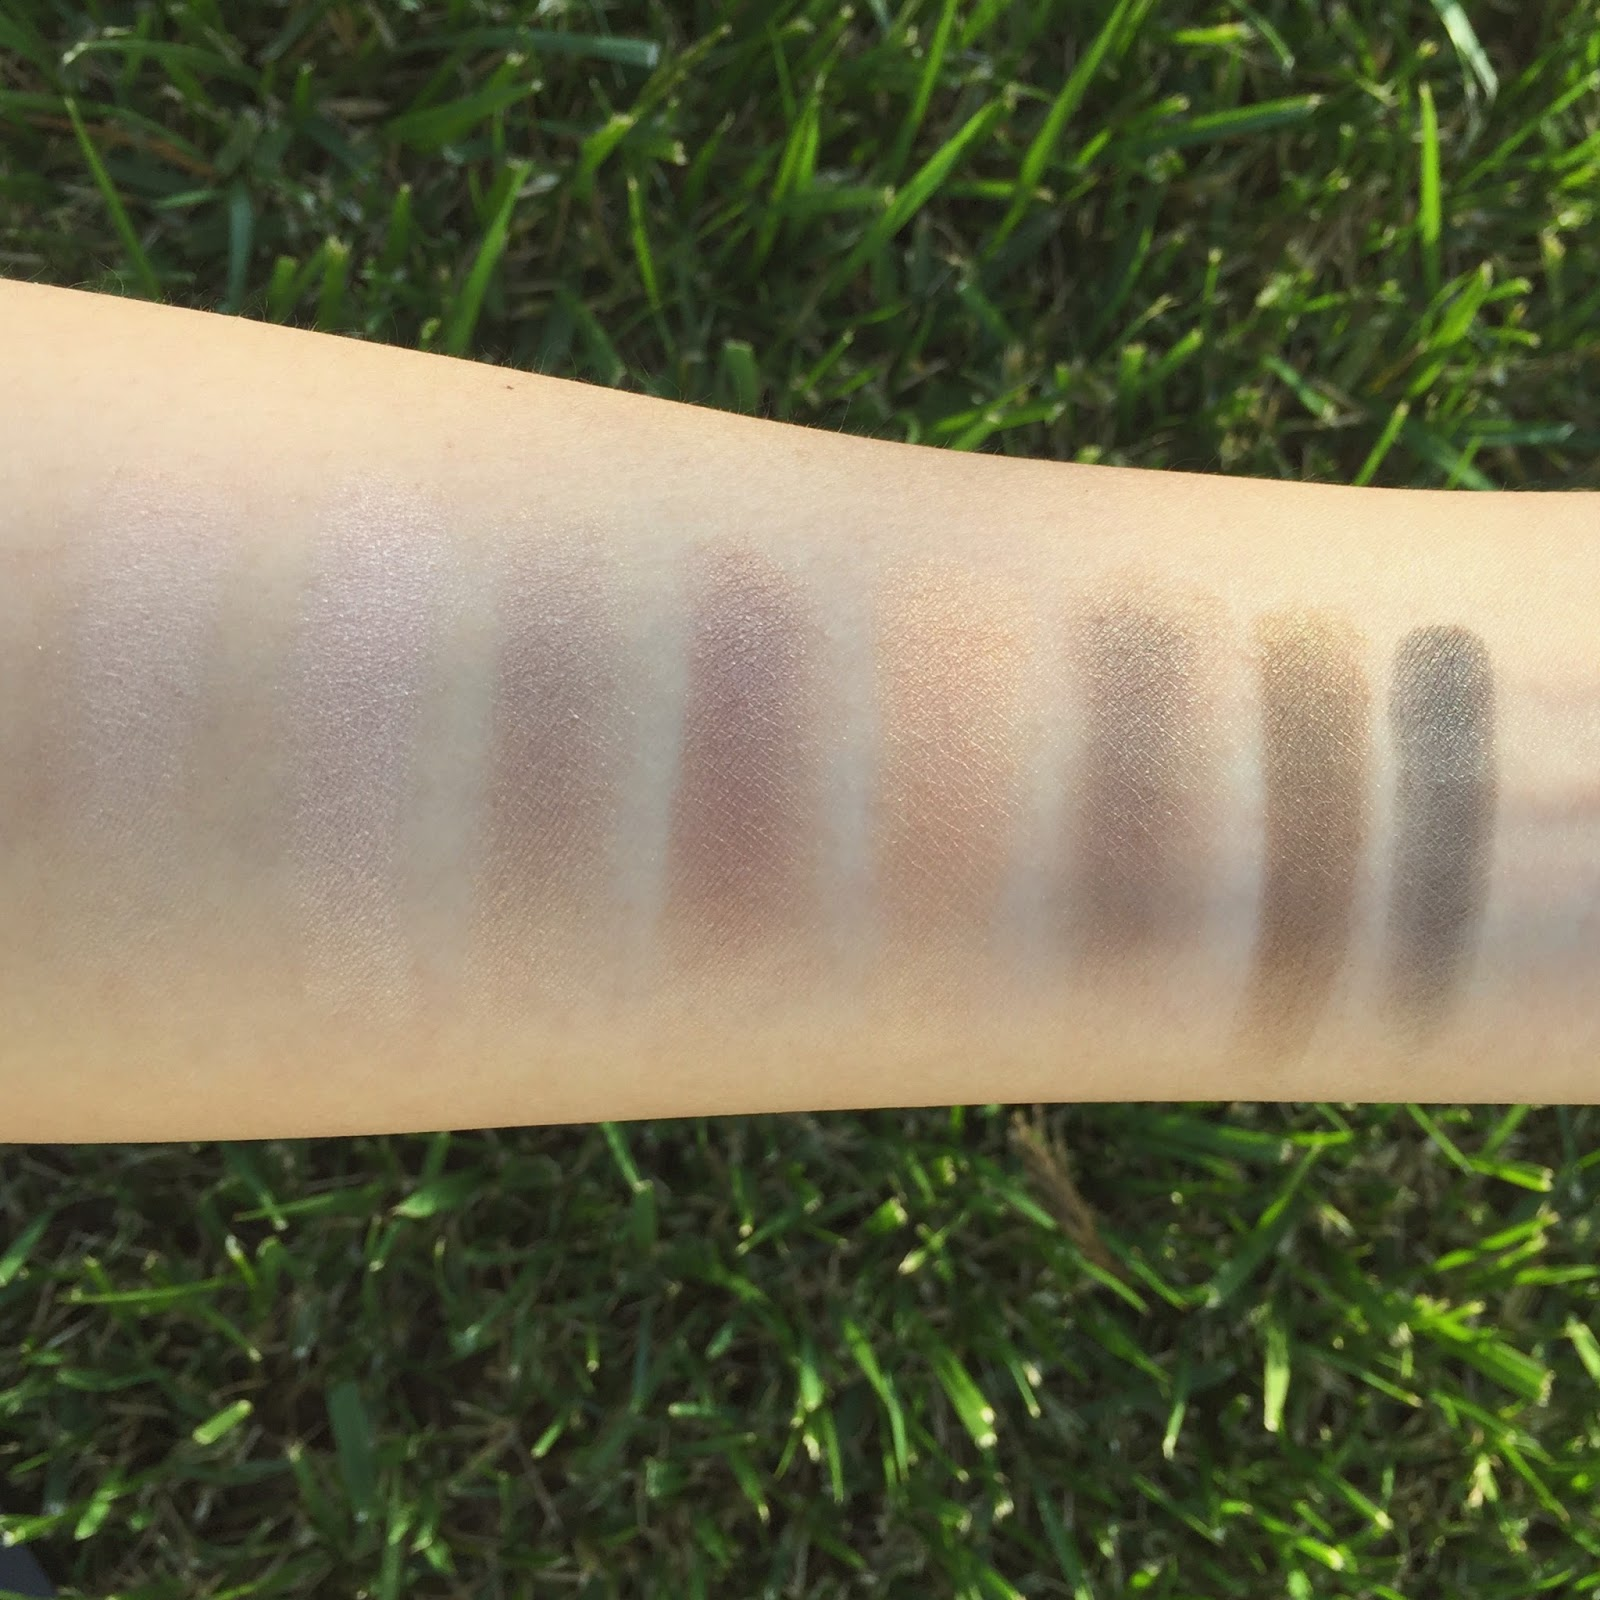 lily lolo laid bare eye palette review swatches natural organic nontoxic hellolindasau